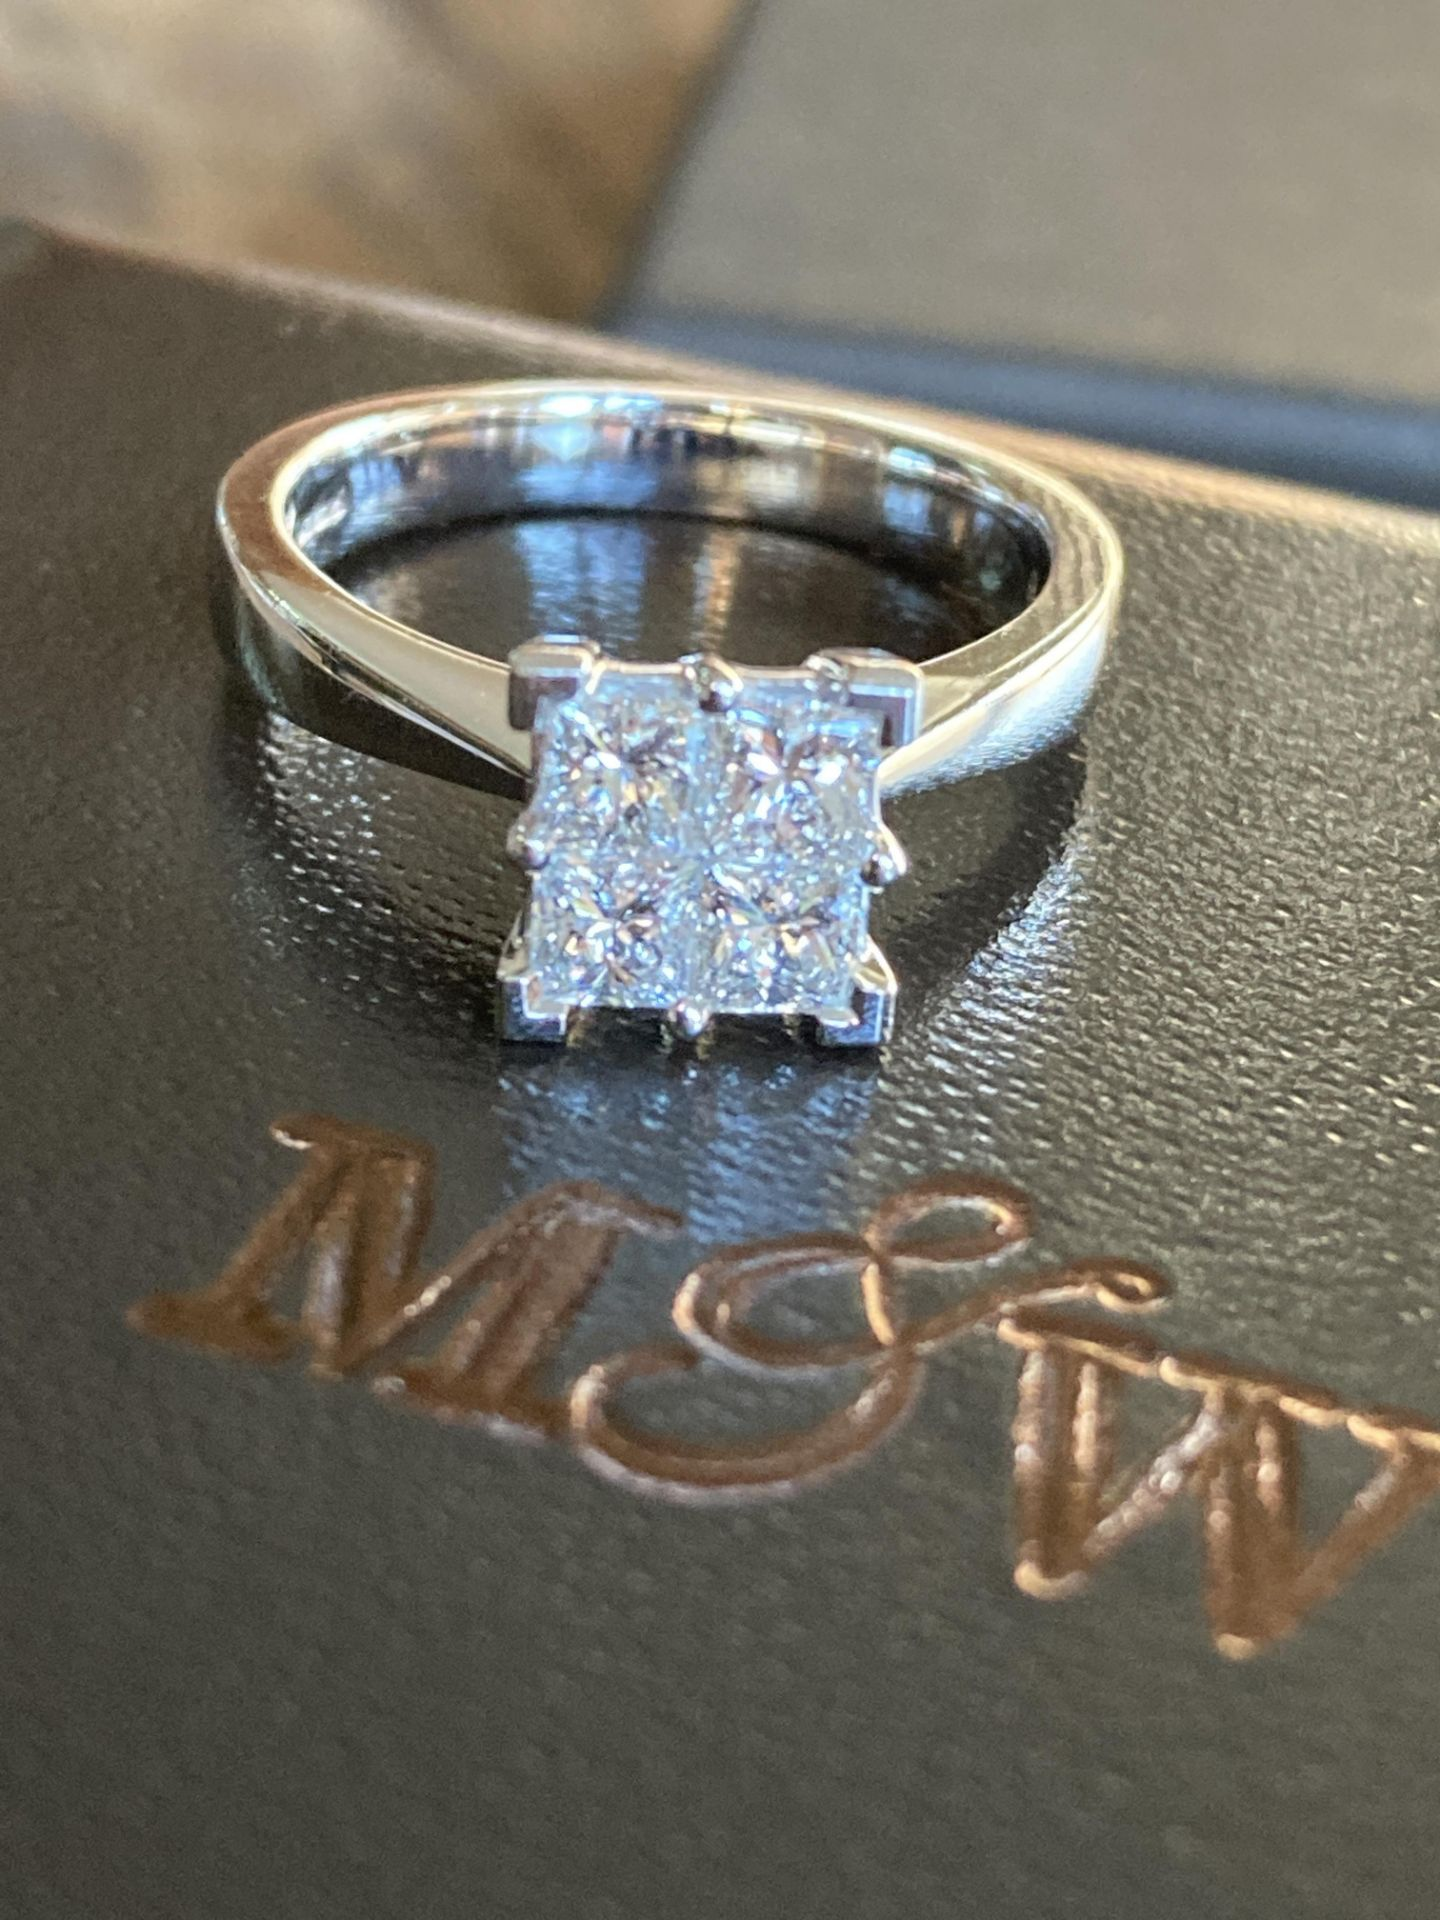 0.8-1CT APPROX. PRINCESS CUT DIAMOND RING IN 18CT WHITE GOLD - SIZE: M / WEIGHT: 5.2G - Image 2 of 4